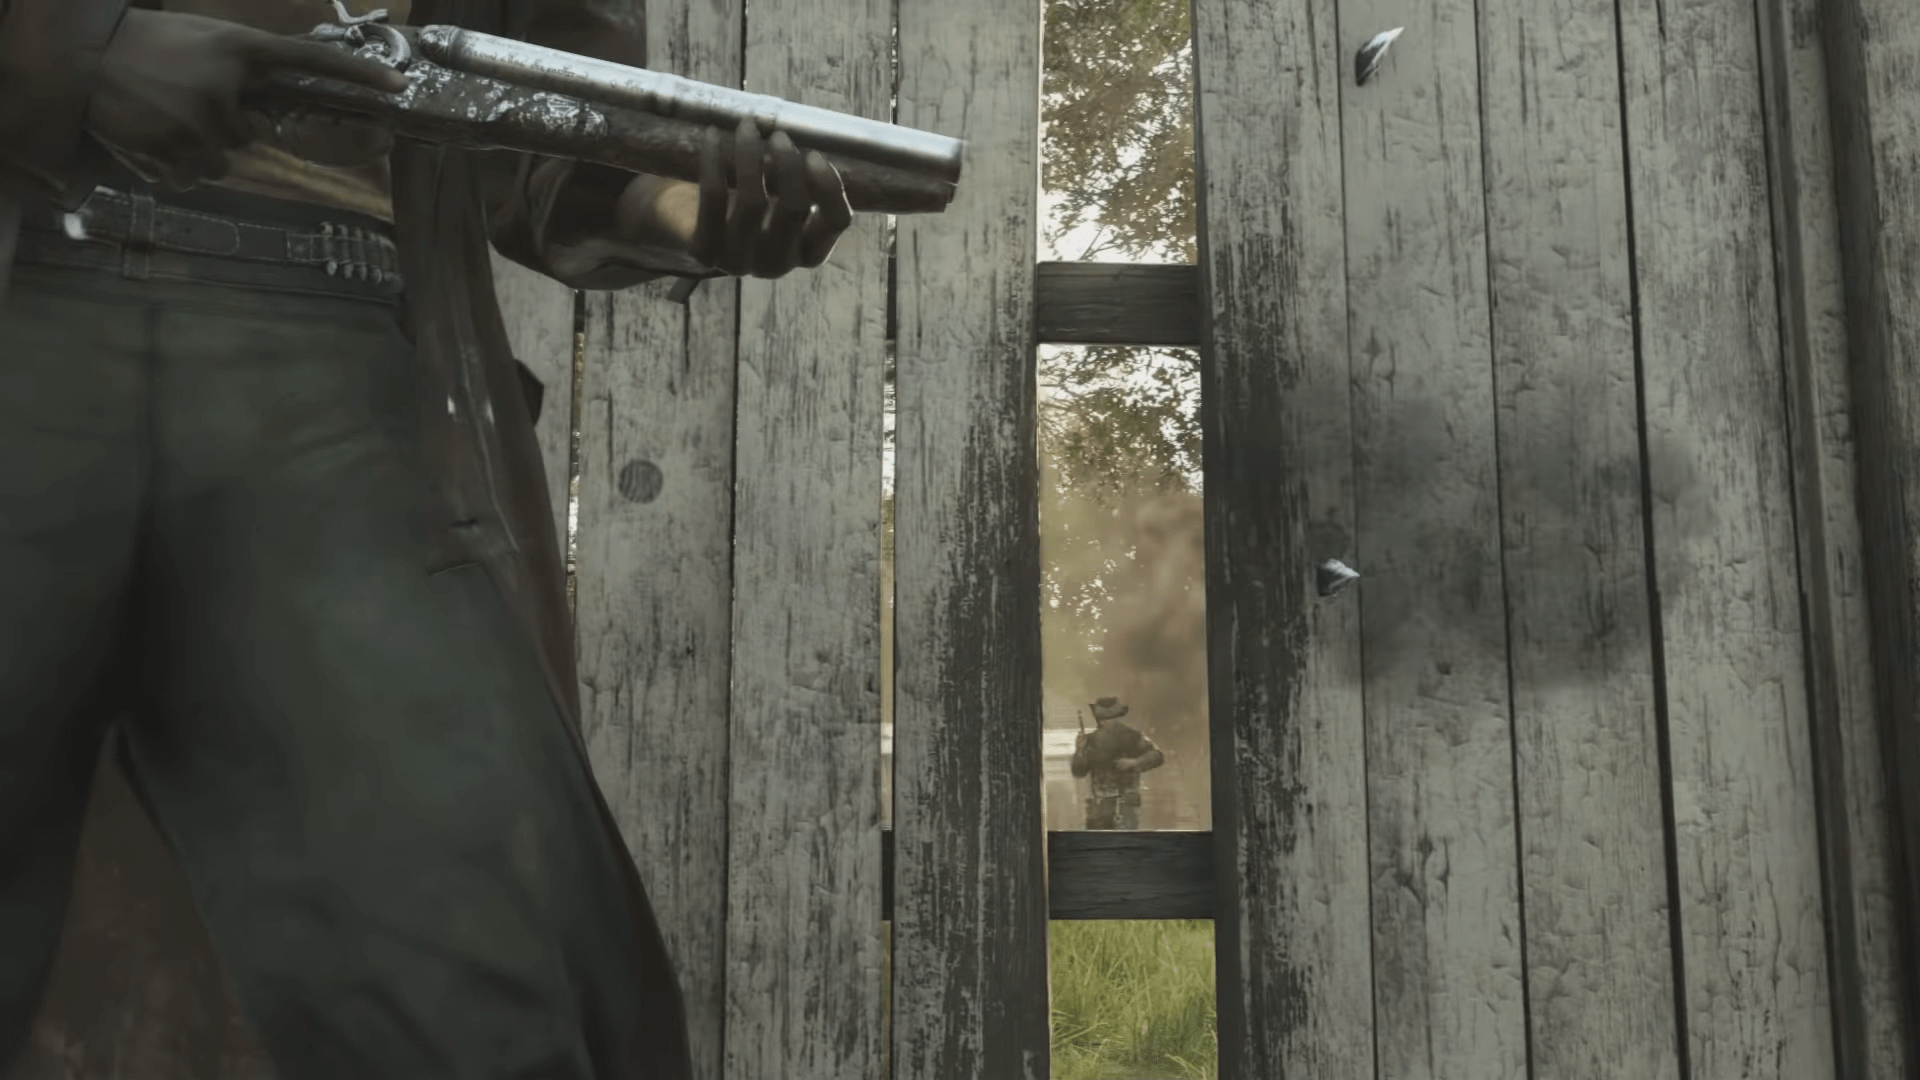 Hunt: Showdown's Latest Patch Brings New A.I. Variants And A New Sunset Setting